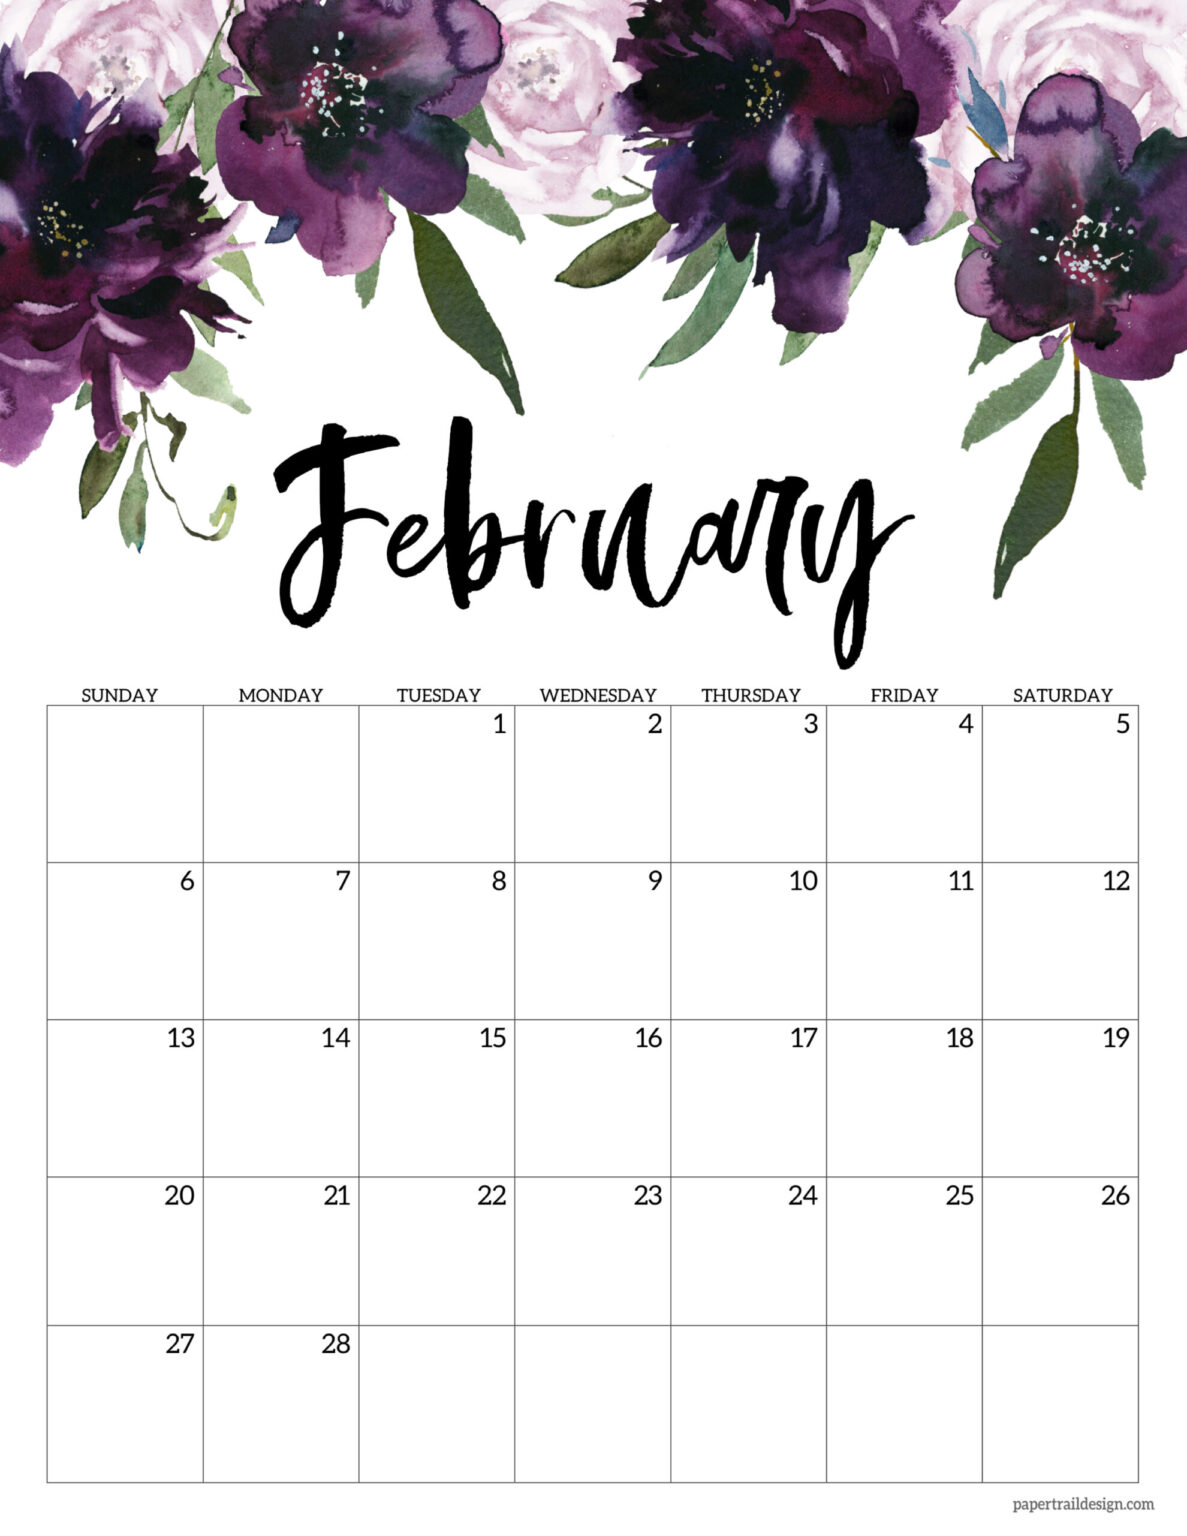 You can budget both your money and your time by making a. Free 2022 Calendar Printable - Floral | Paper Trail Design